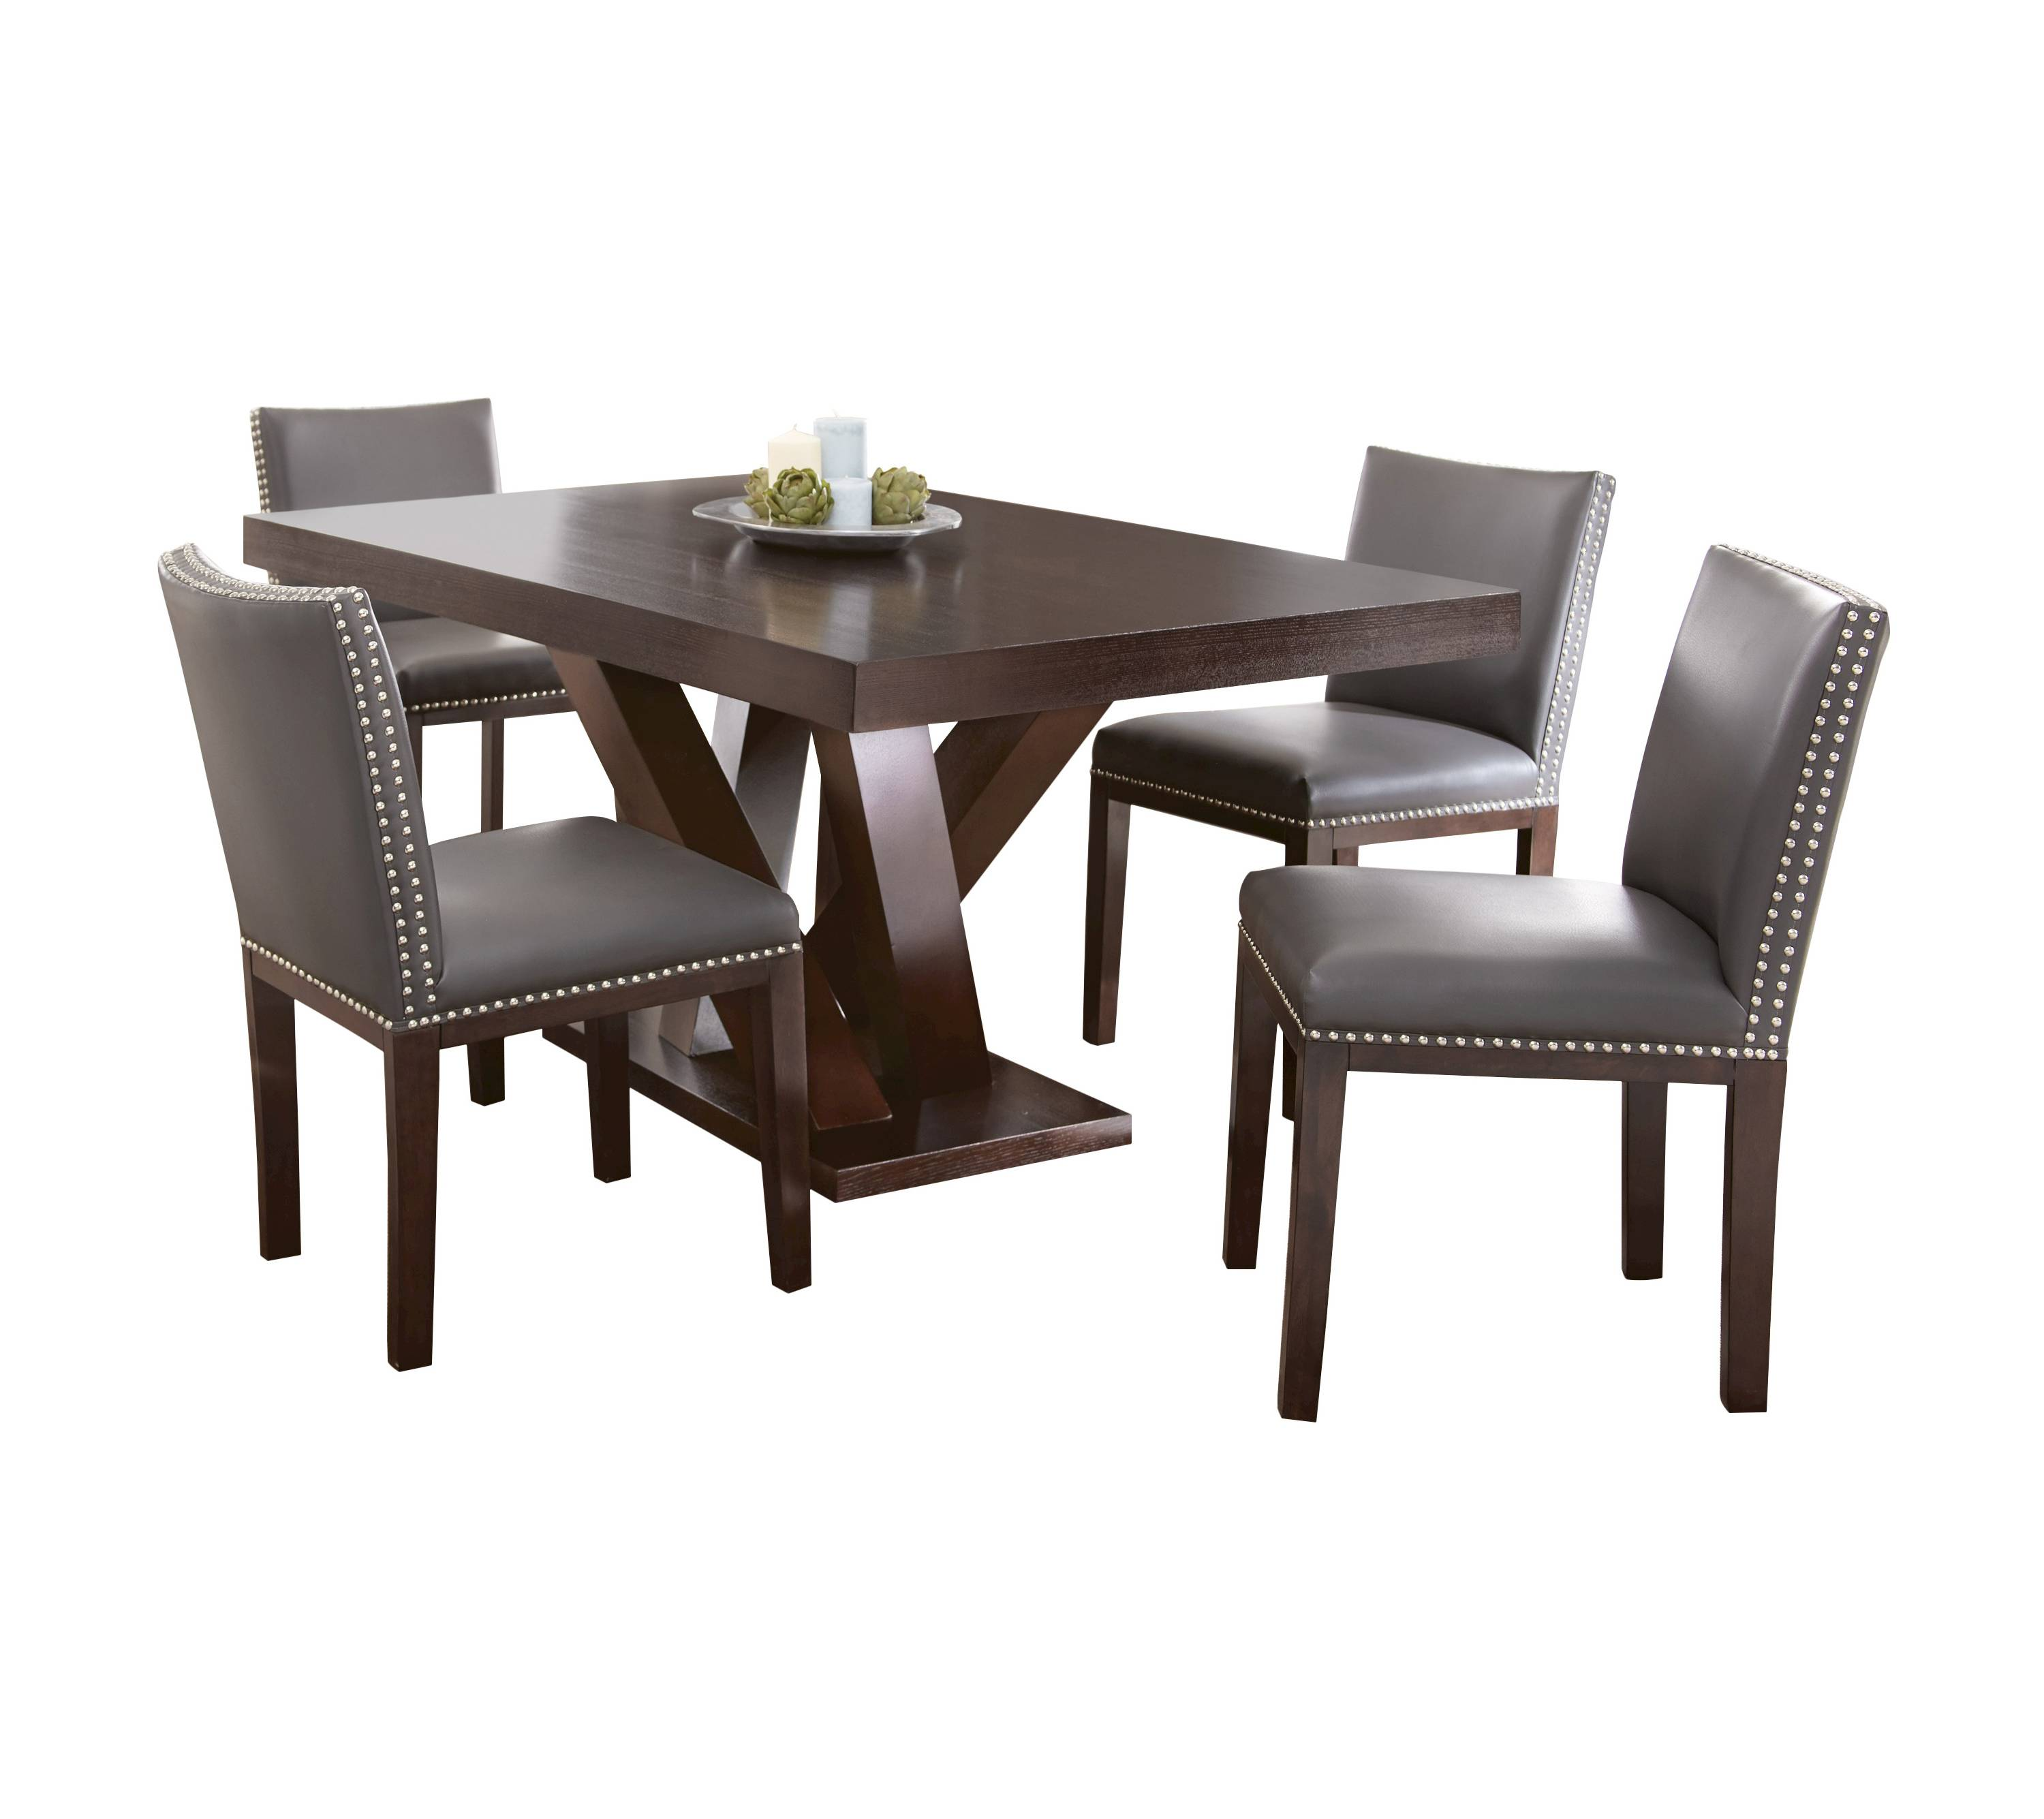 Whitney wood dining table